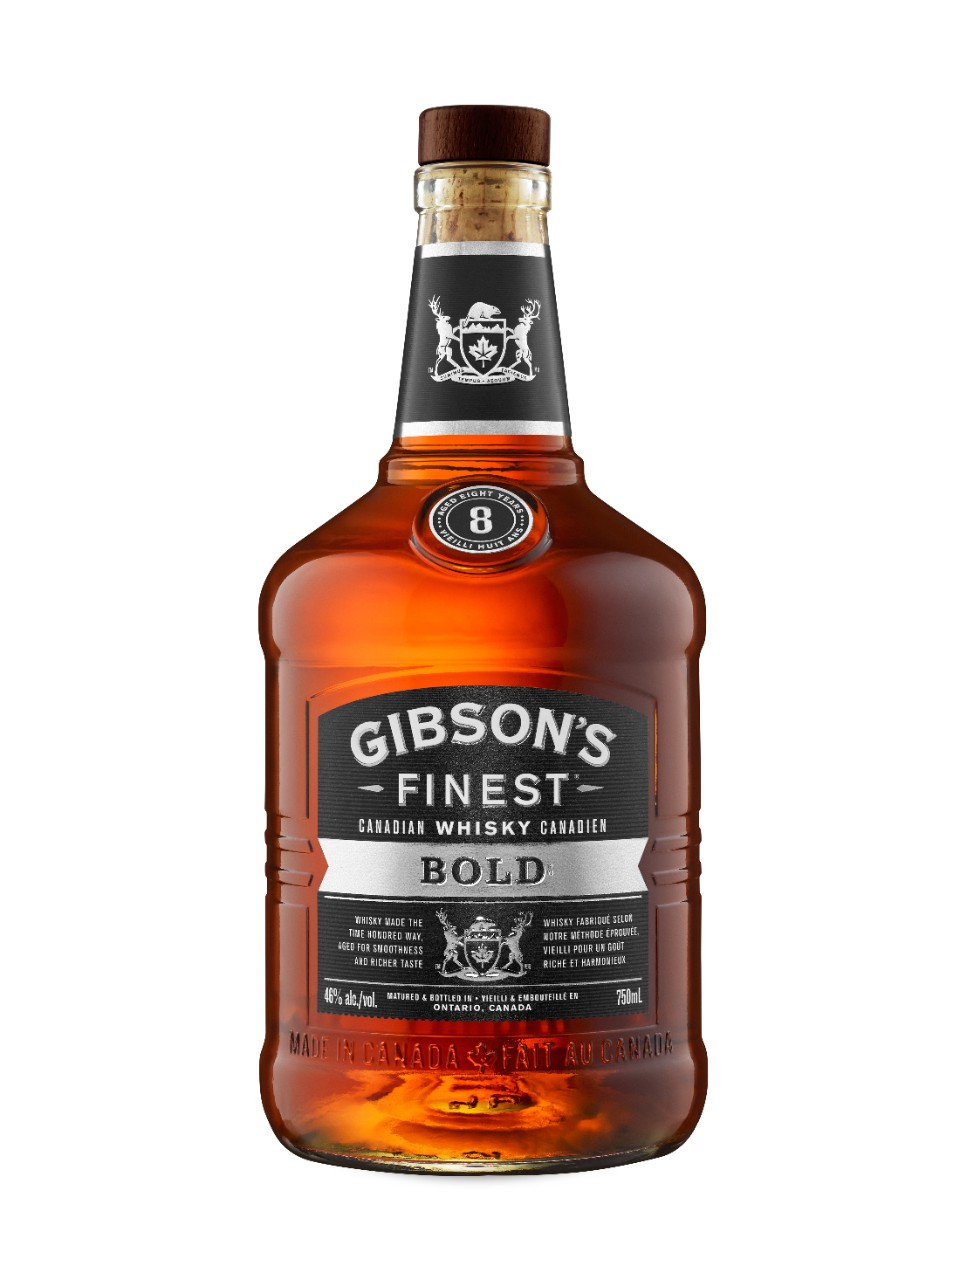 Whisky canadien Gibson's Finest Bold 8 ans d'âge